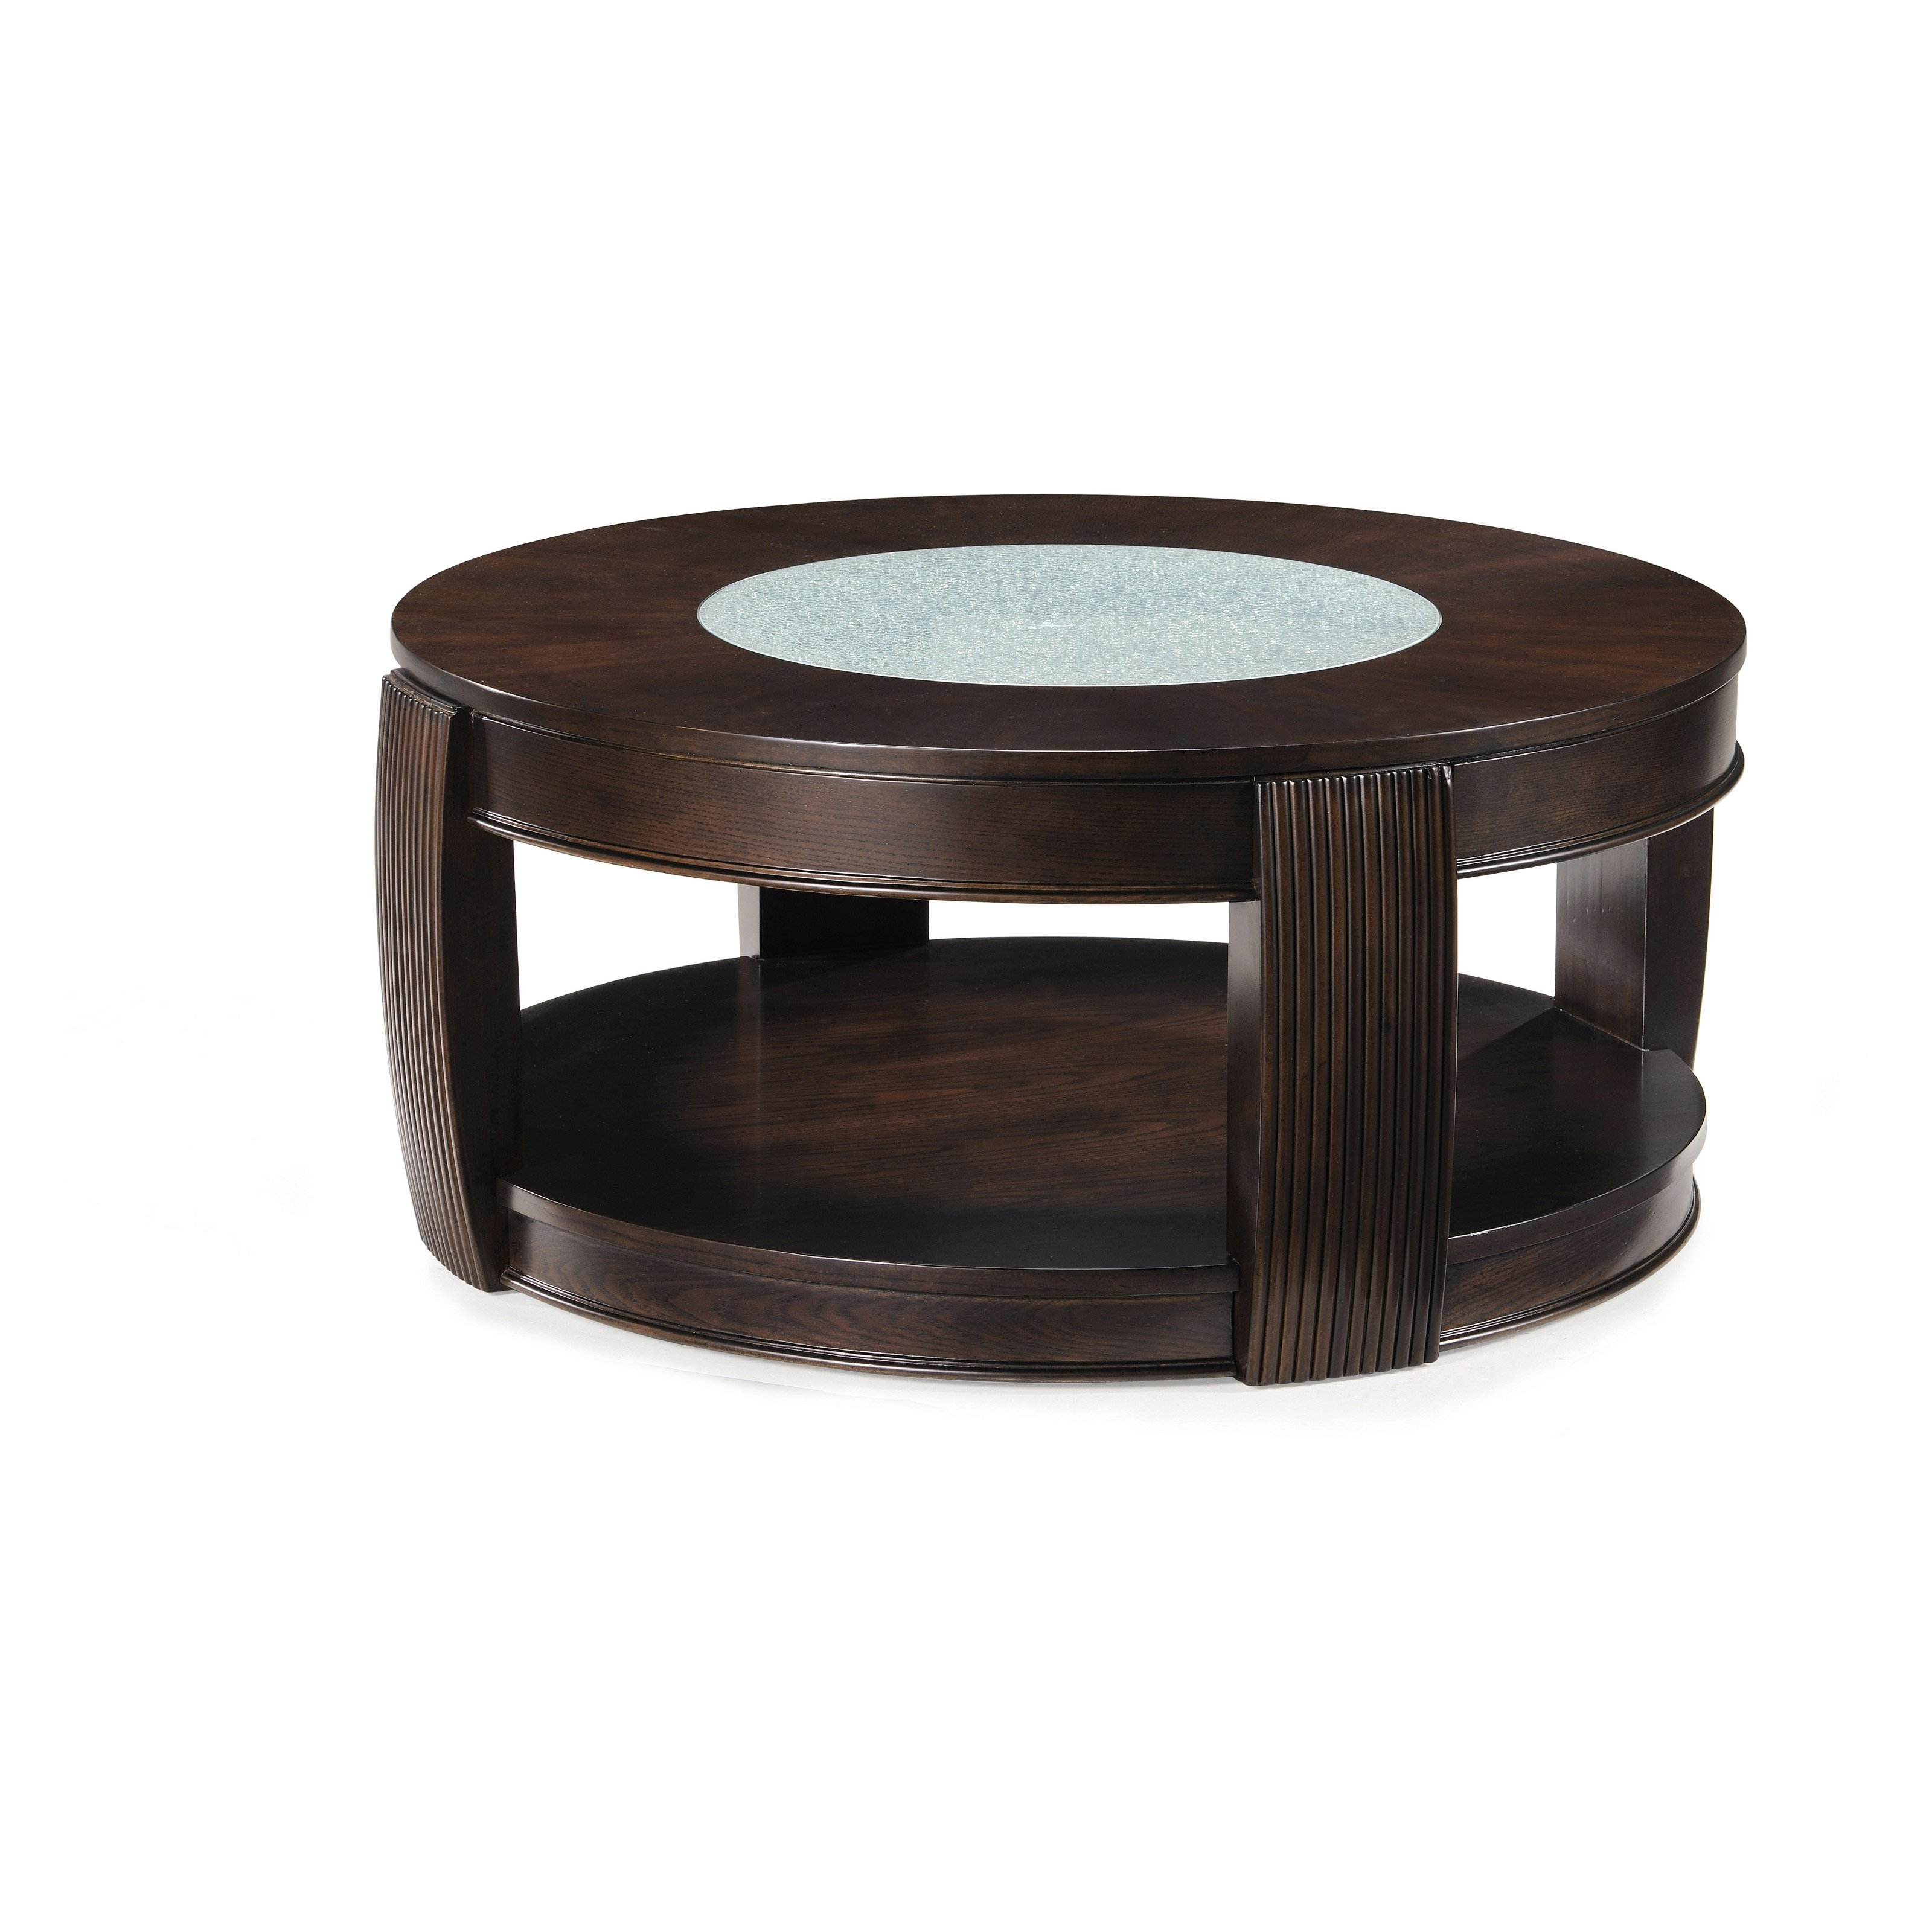 Most Current Ontario Cocktail Tables With Casters For Magnussen T1738 Ino Wood And Glass Round Coffee Table With Casters (View 13 of 20)